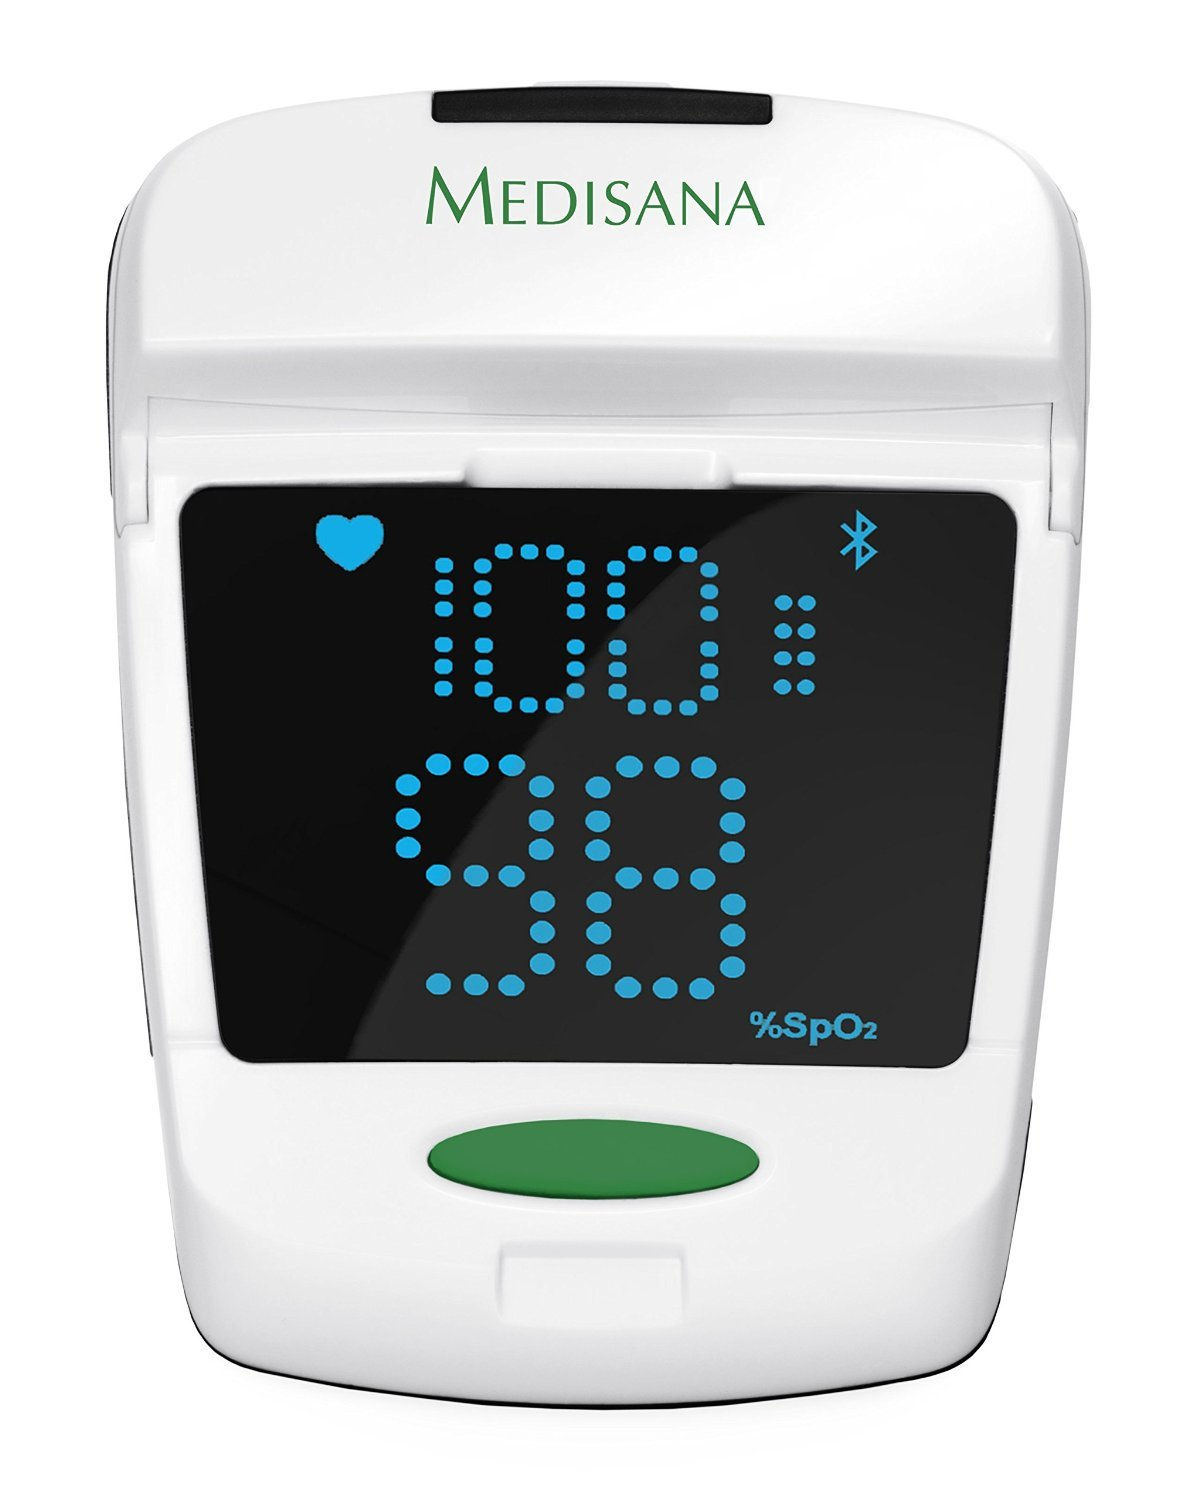 Medisana PM 150 Connect - Pulsioxímetro, con función Bluetooth Smart, color blanco y gris: Amazon.es: Salud y cuidado personal